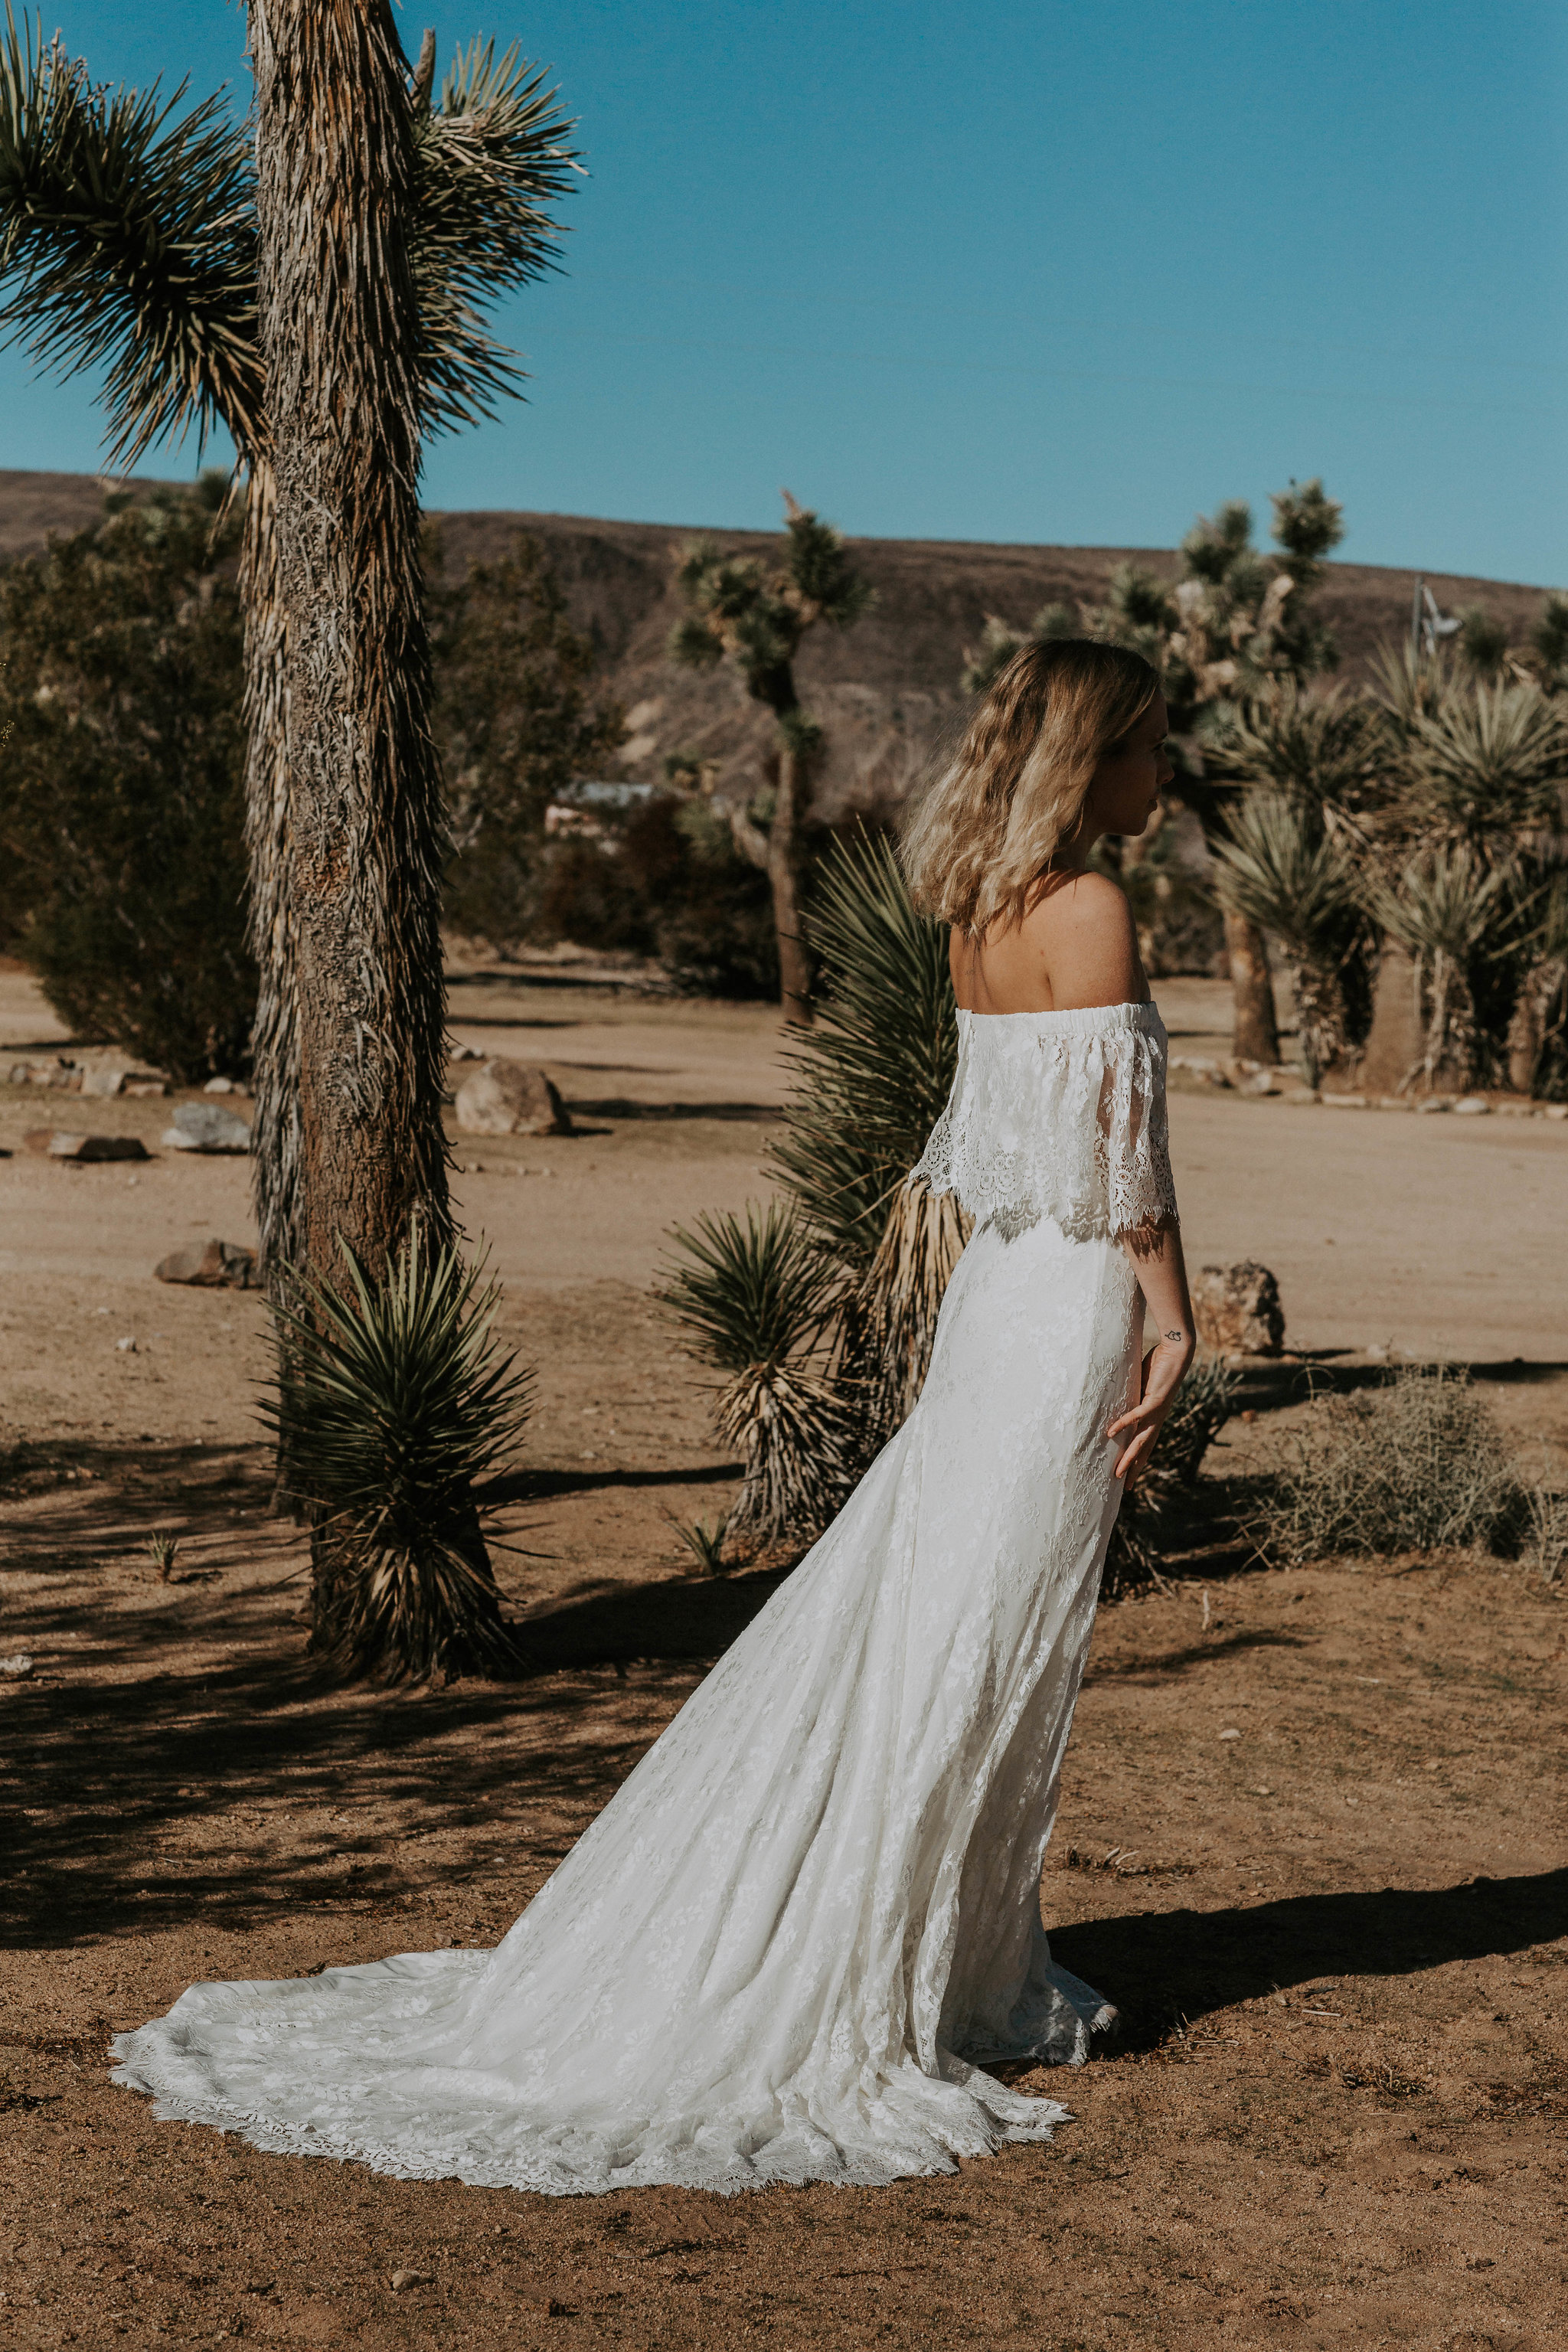 boho wedding dress by Daughters of simone